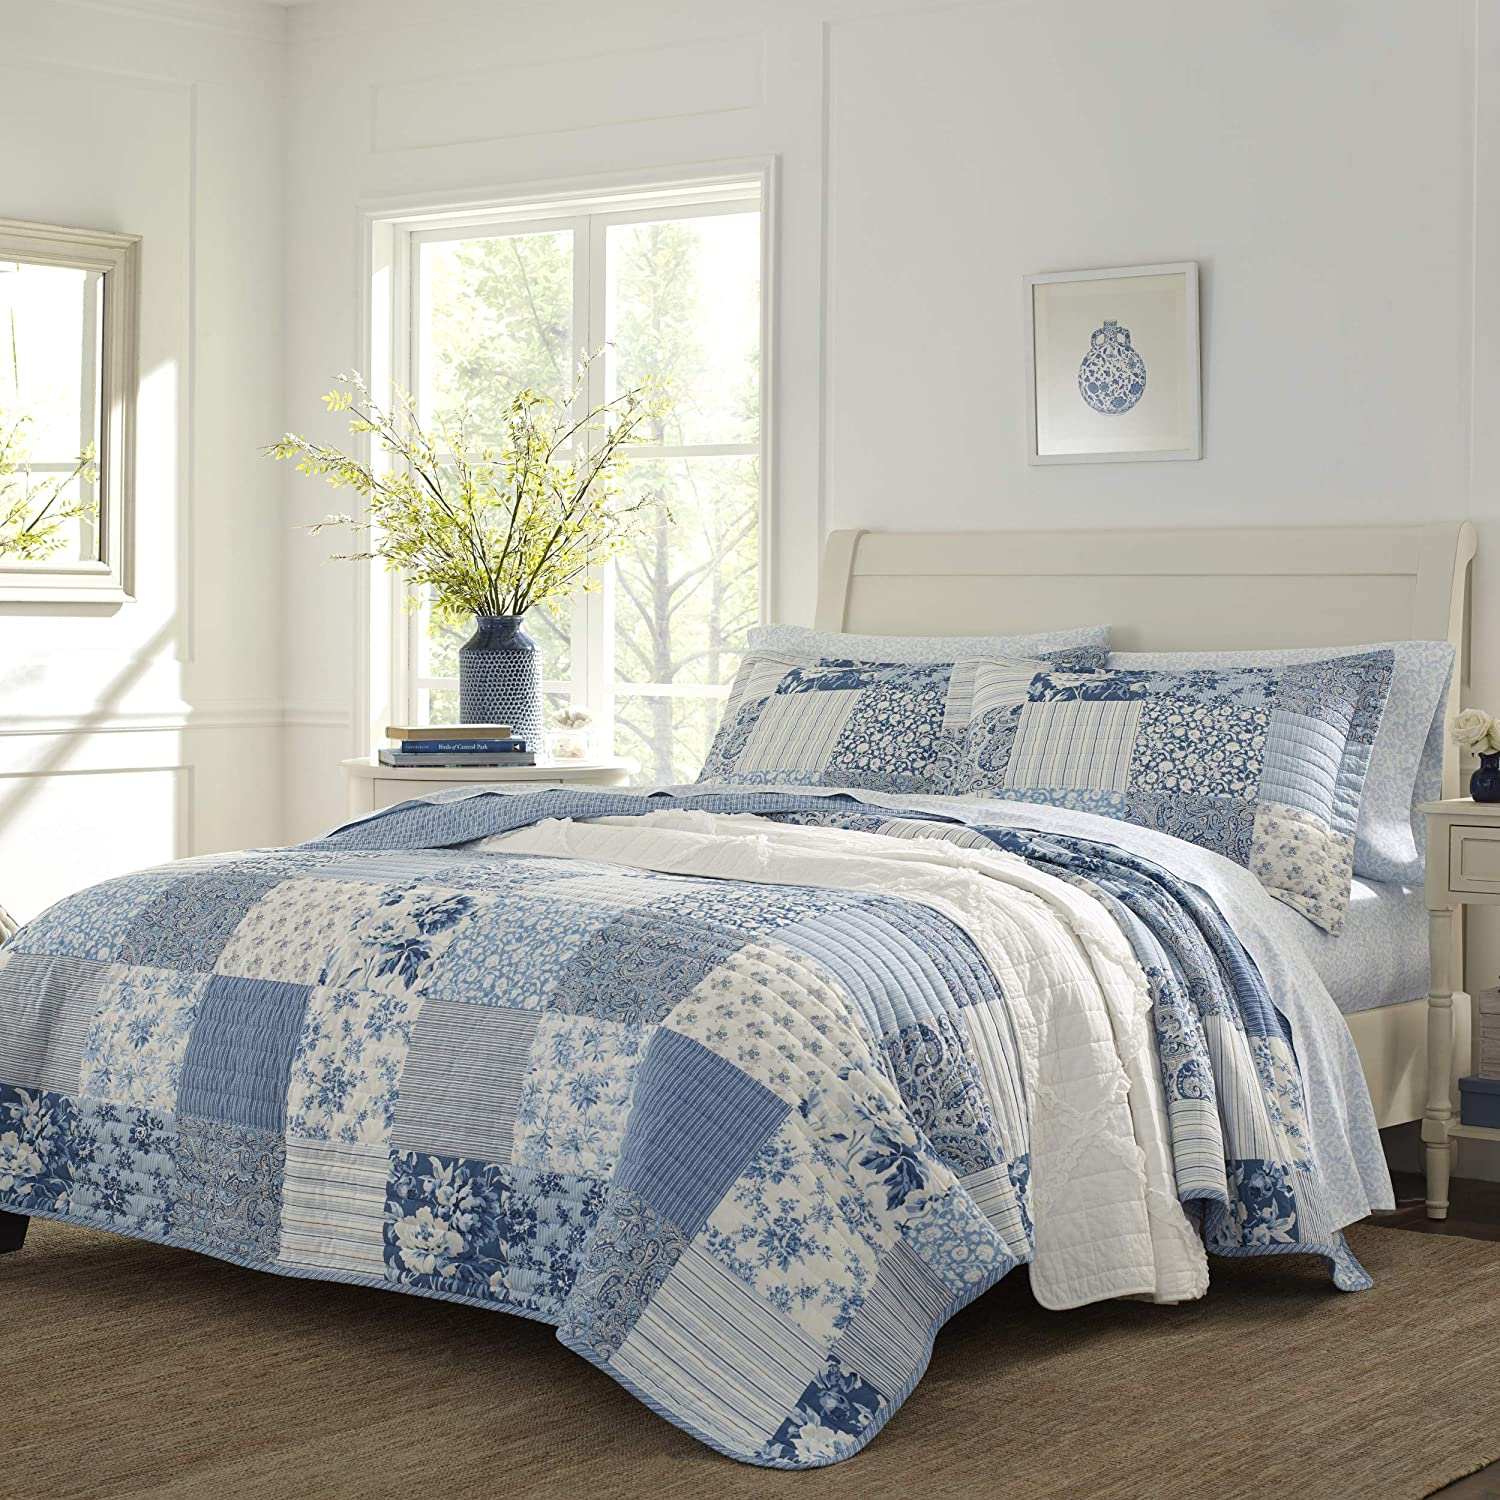 Laura Ashley Home | Paisley Patchwork Collection | Luxury Premium Ultra Soft Quilt Coverlet, Comfortable 3 Piece Bedding Set, All Season Stylish Bedspread, Full/Queen, Blue